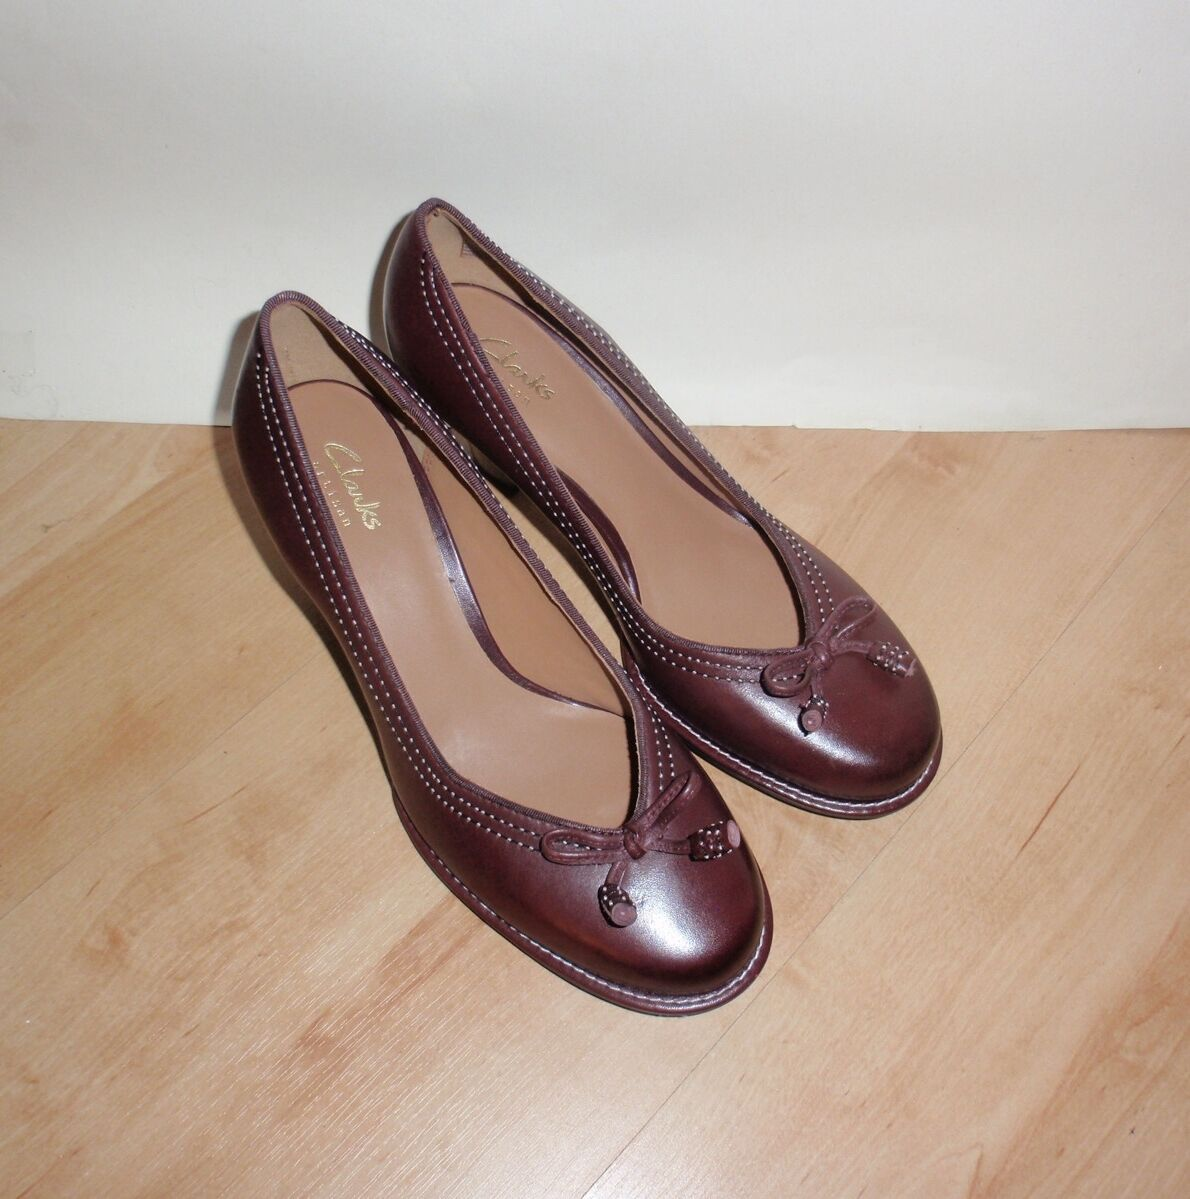 BNIB Clarks womens BOMBAY LIGHTS burgundy leather heeled shoes - various sizes